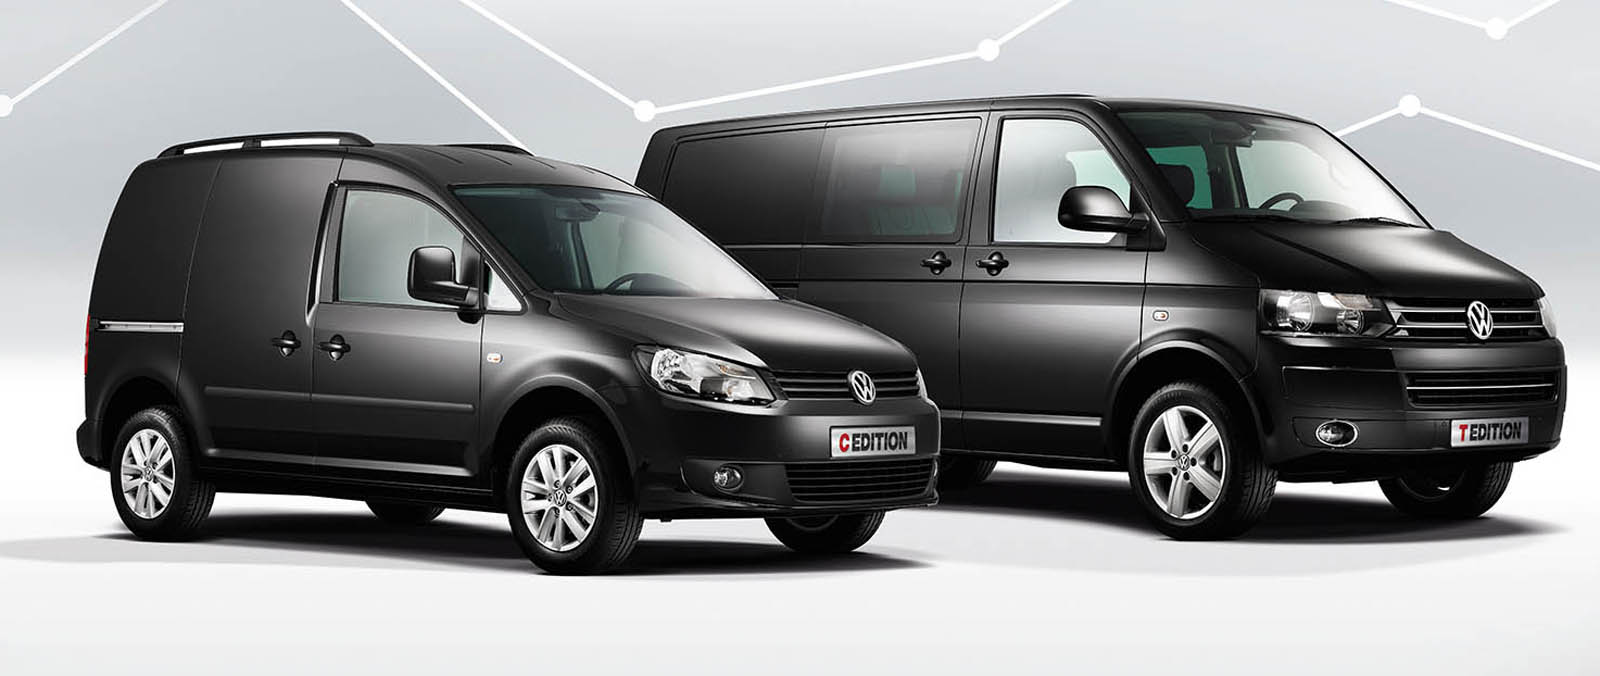 de volkswagen transporter t edition en caddy c edition. Black Bedroom Furniture Sets. Home Design Ideas